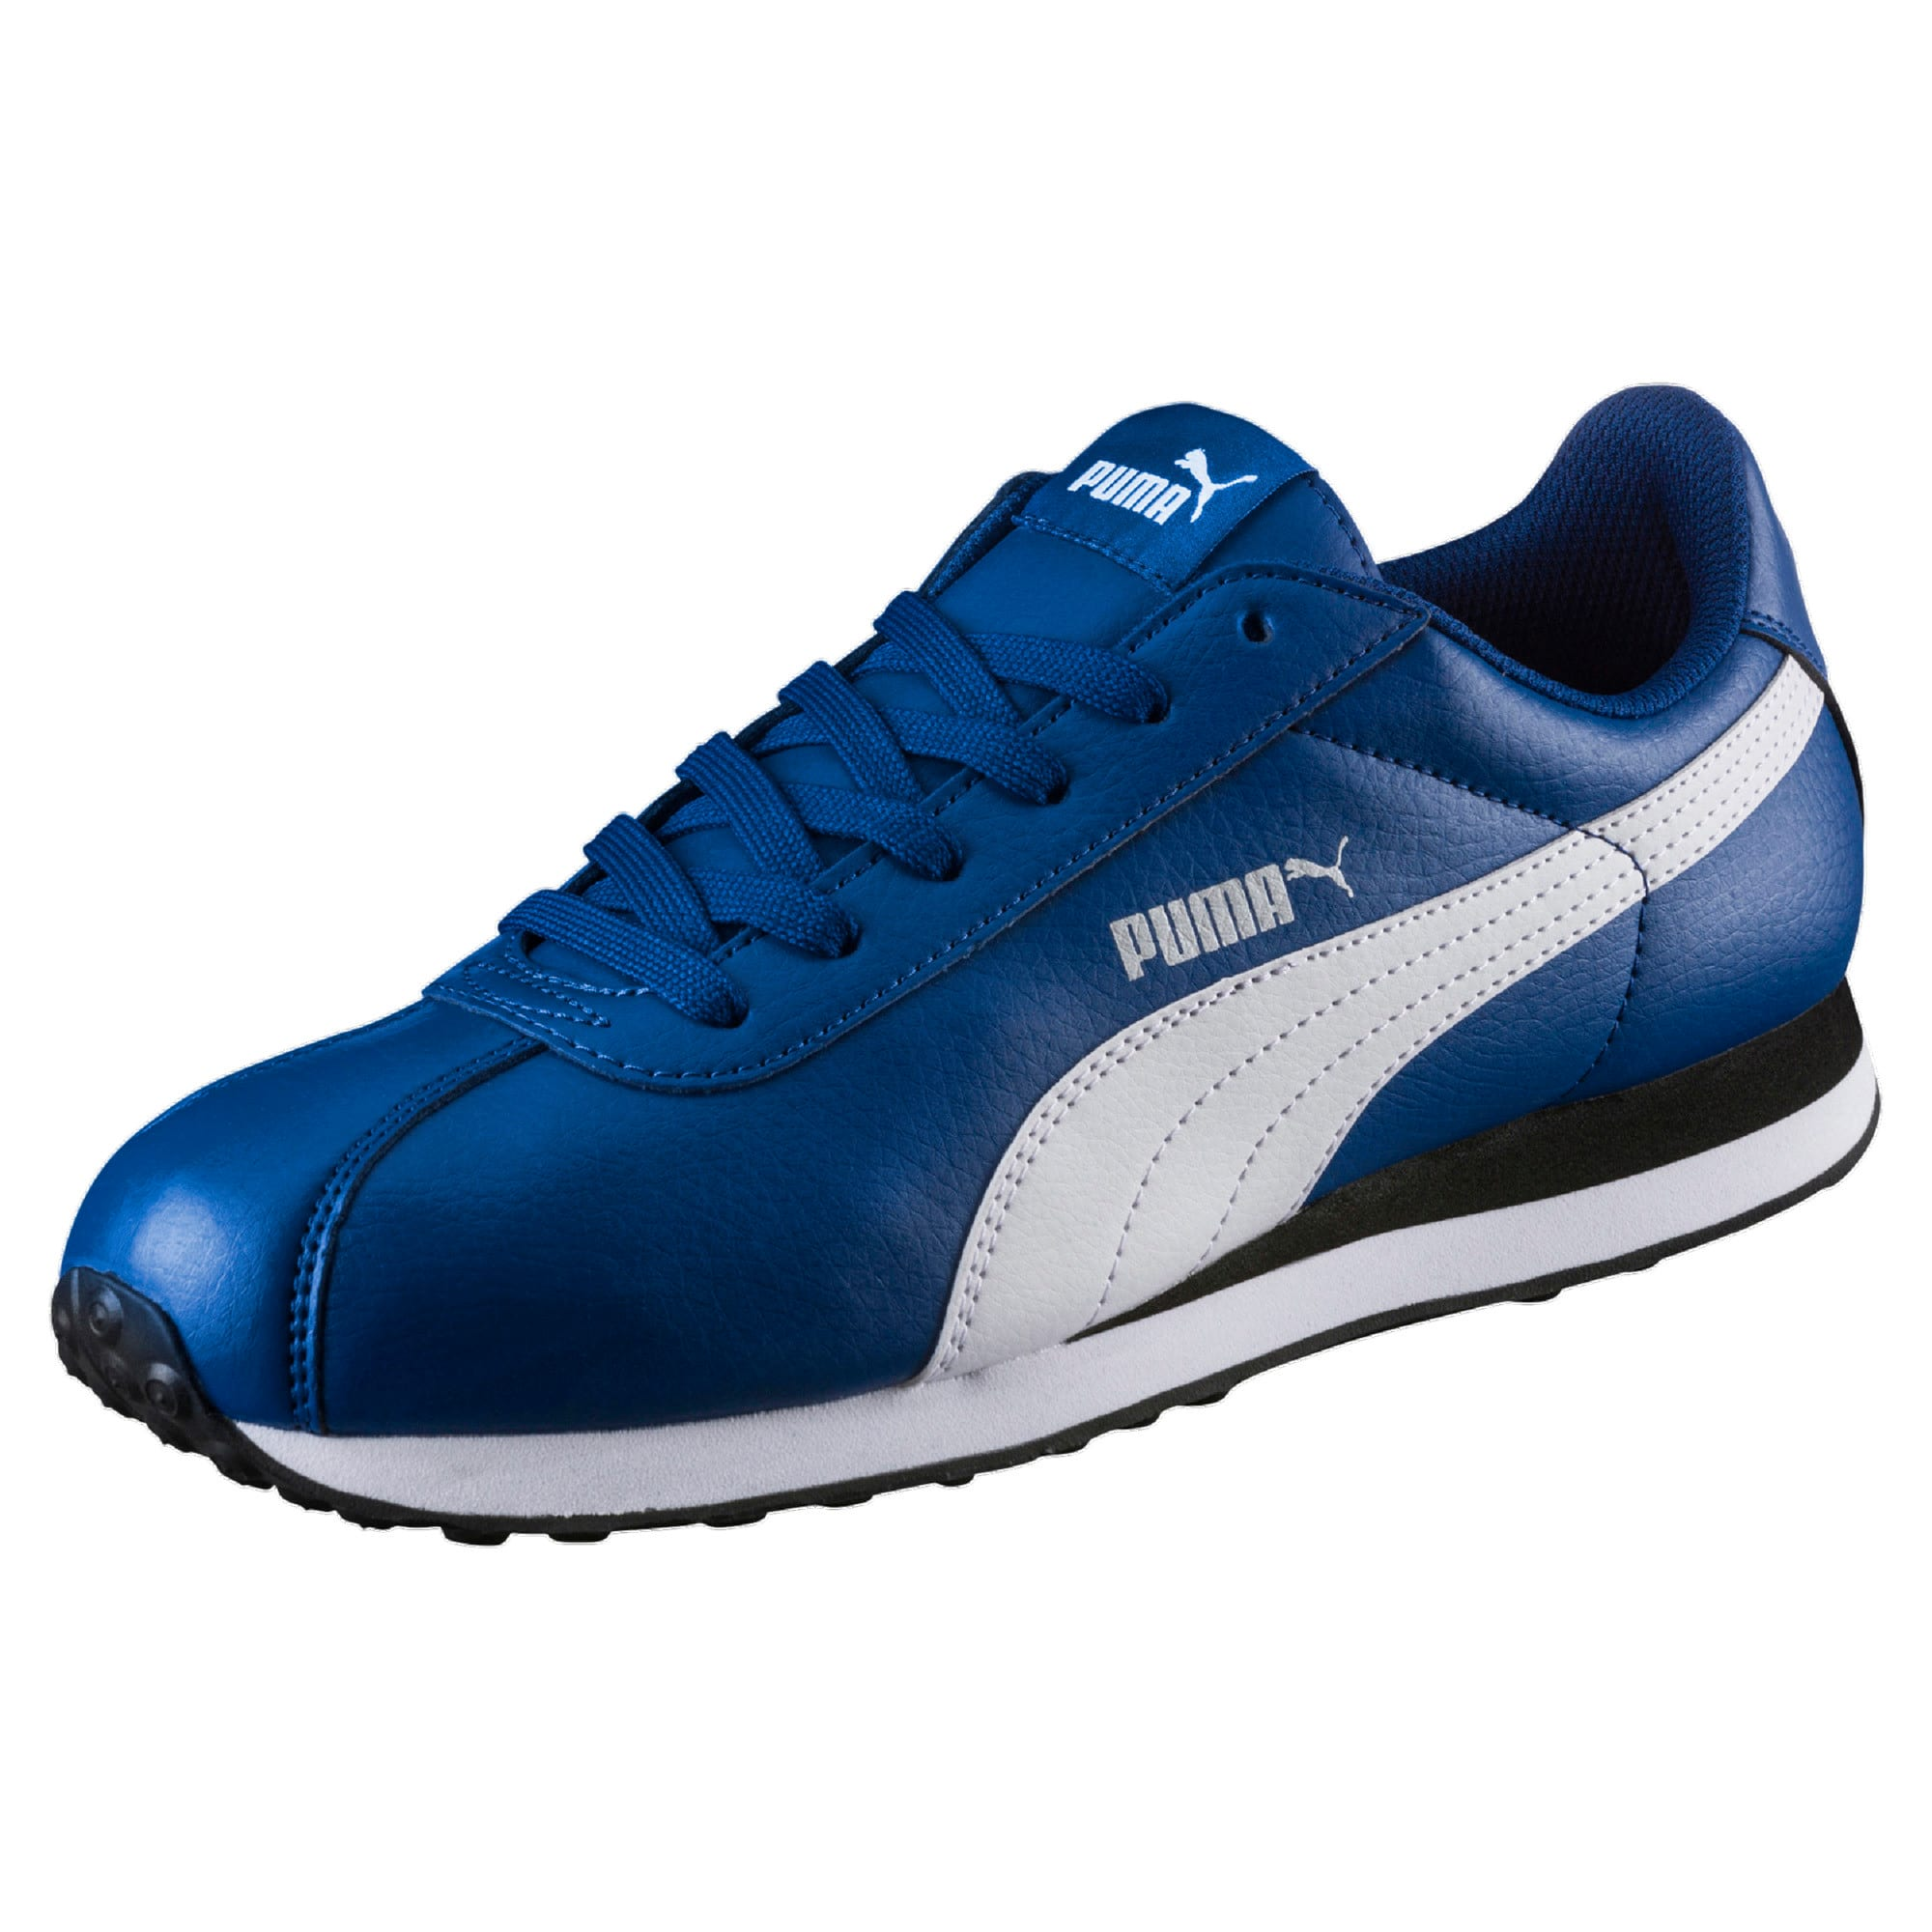 Thumbnail 1 of Turin Trainers, TRUE BLUE-Puma White, medium-IND